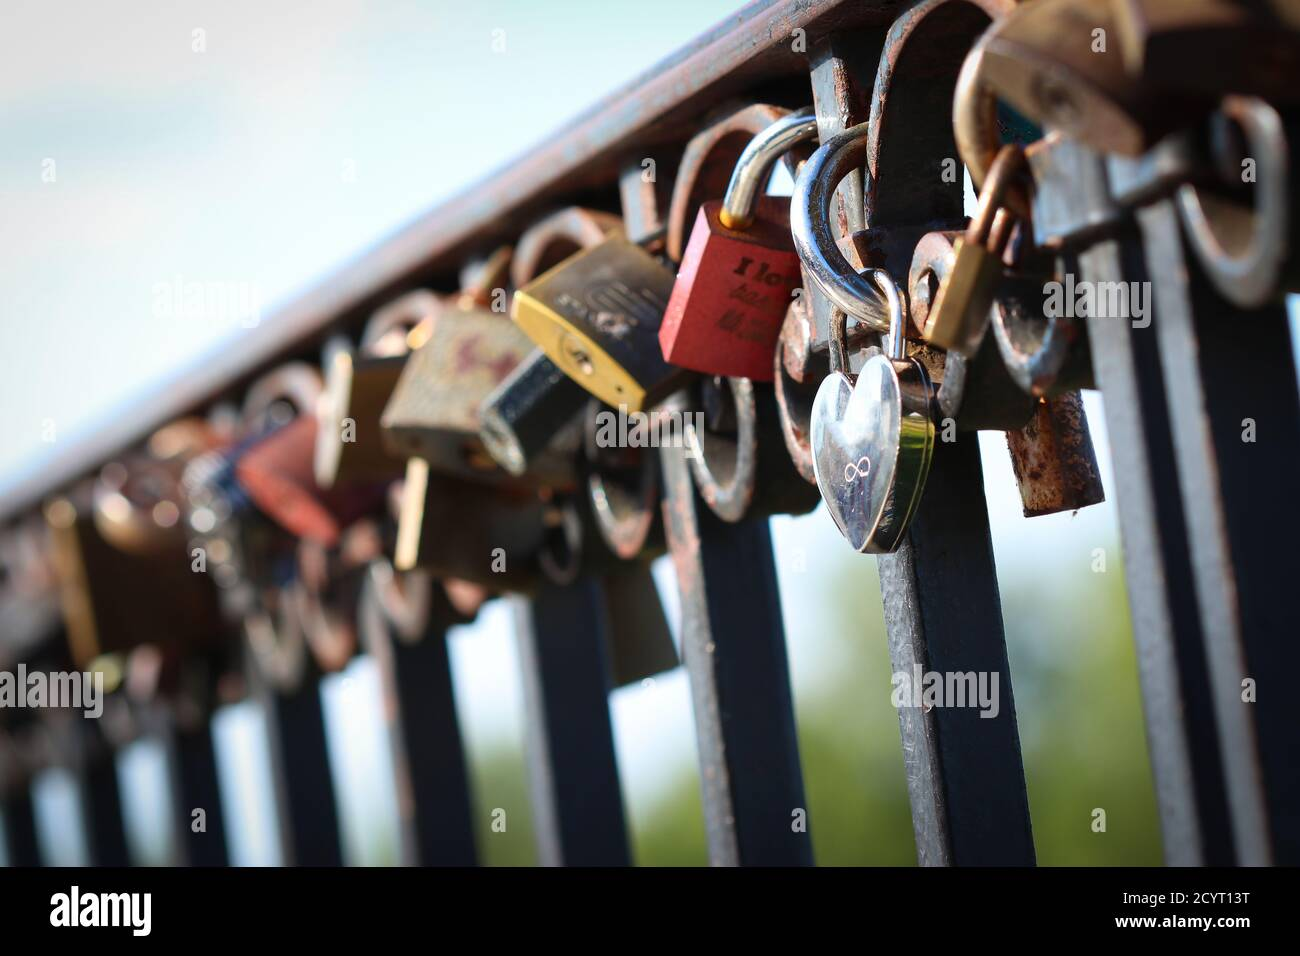 Love padlocks attached to the railing in Warsaw, Poland Stock Photo